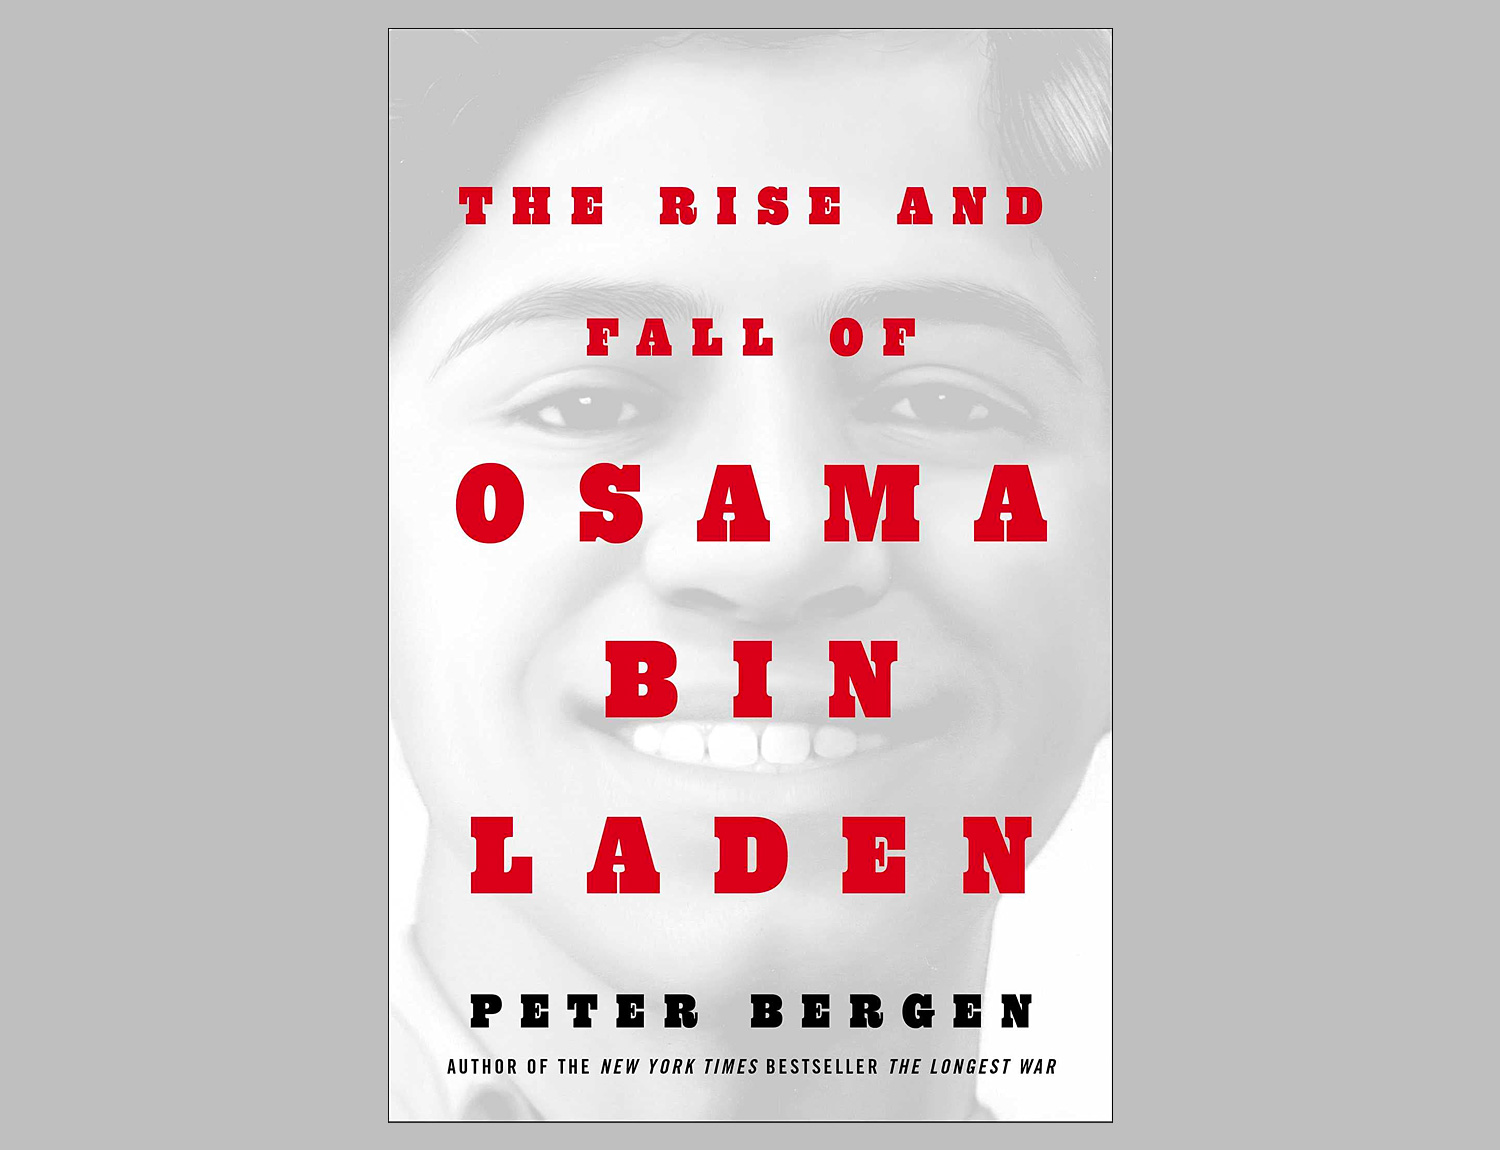 The Rise and Fall of Osama bin Laden at werd.com